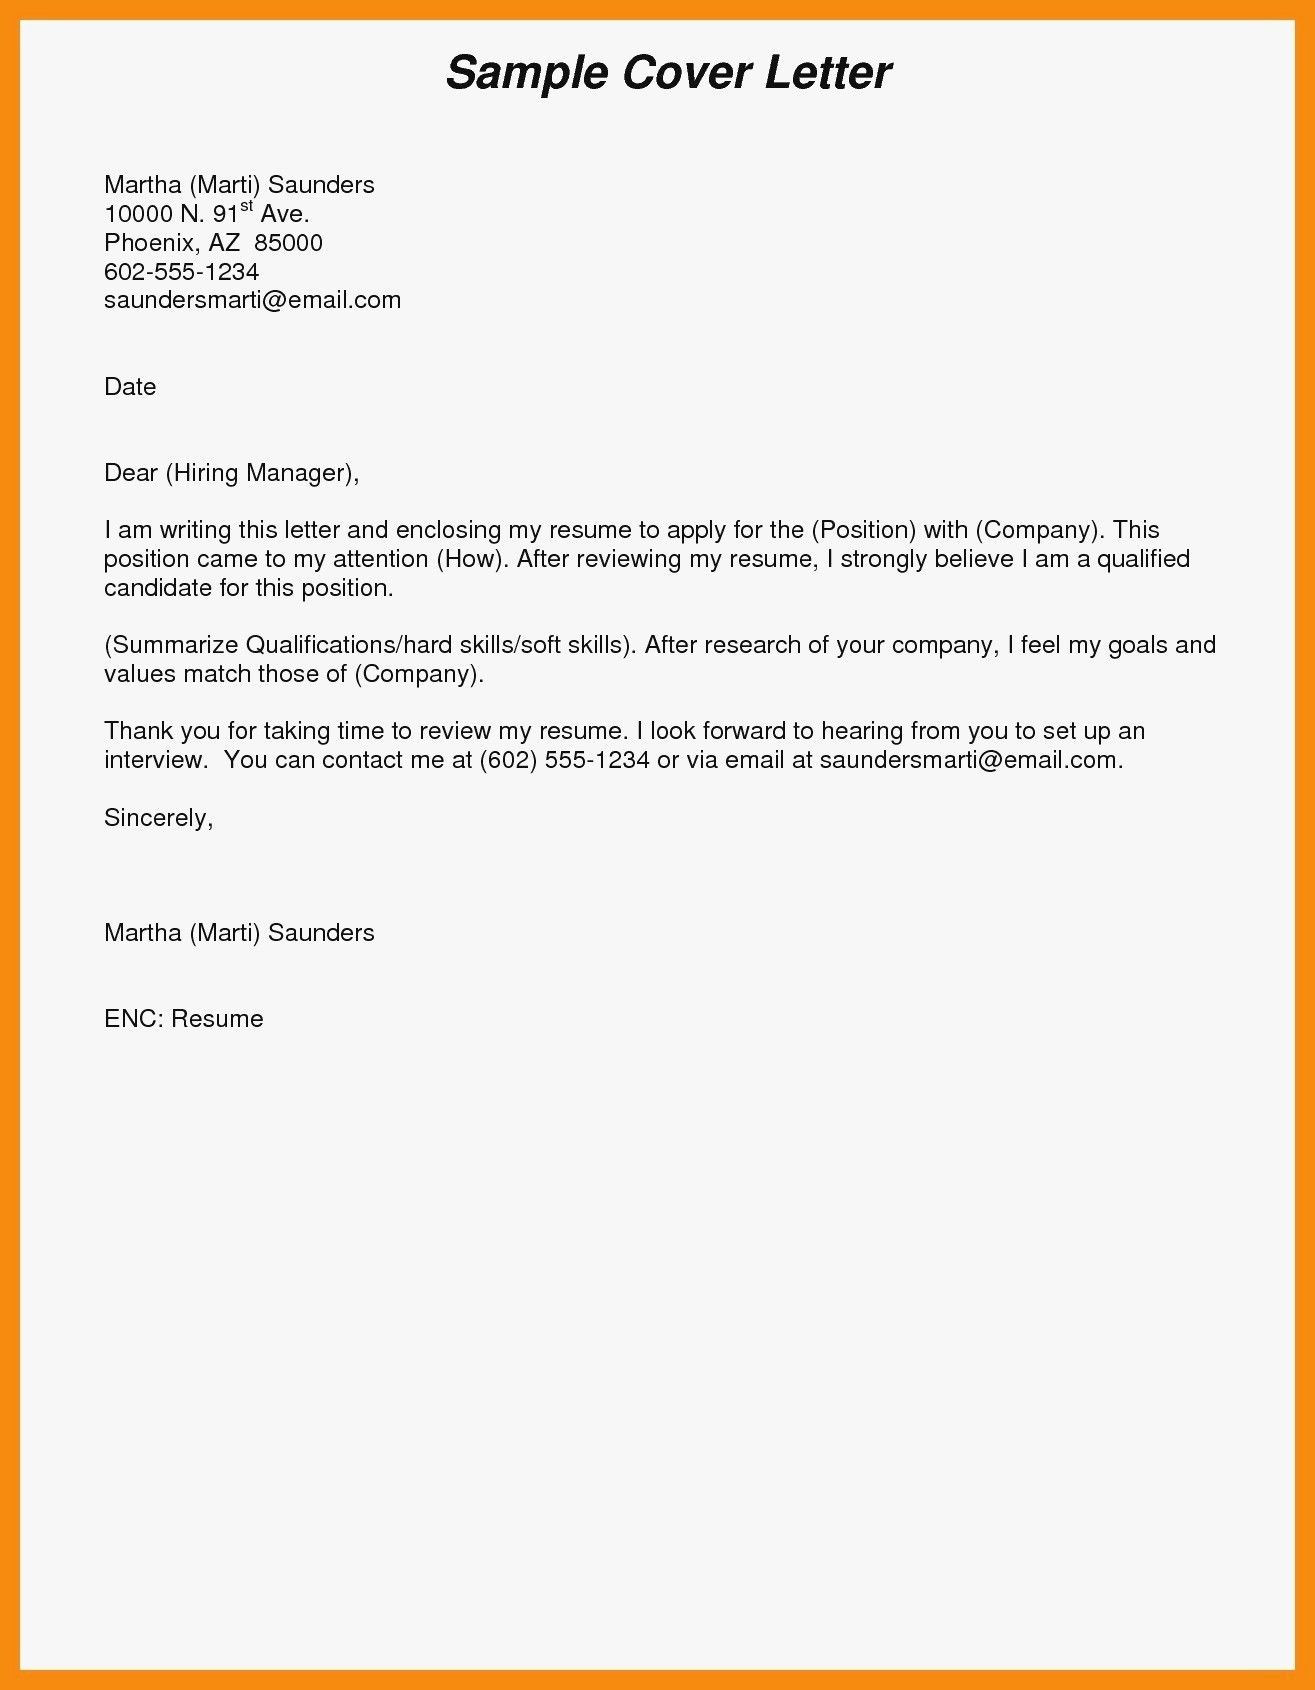 Email Resume and Cover Letter Sample 25lancarrezekiq Email Cover Letter . Email Cover Letter Cover Letter Job …